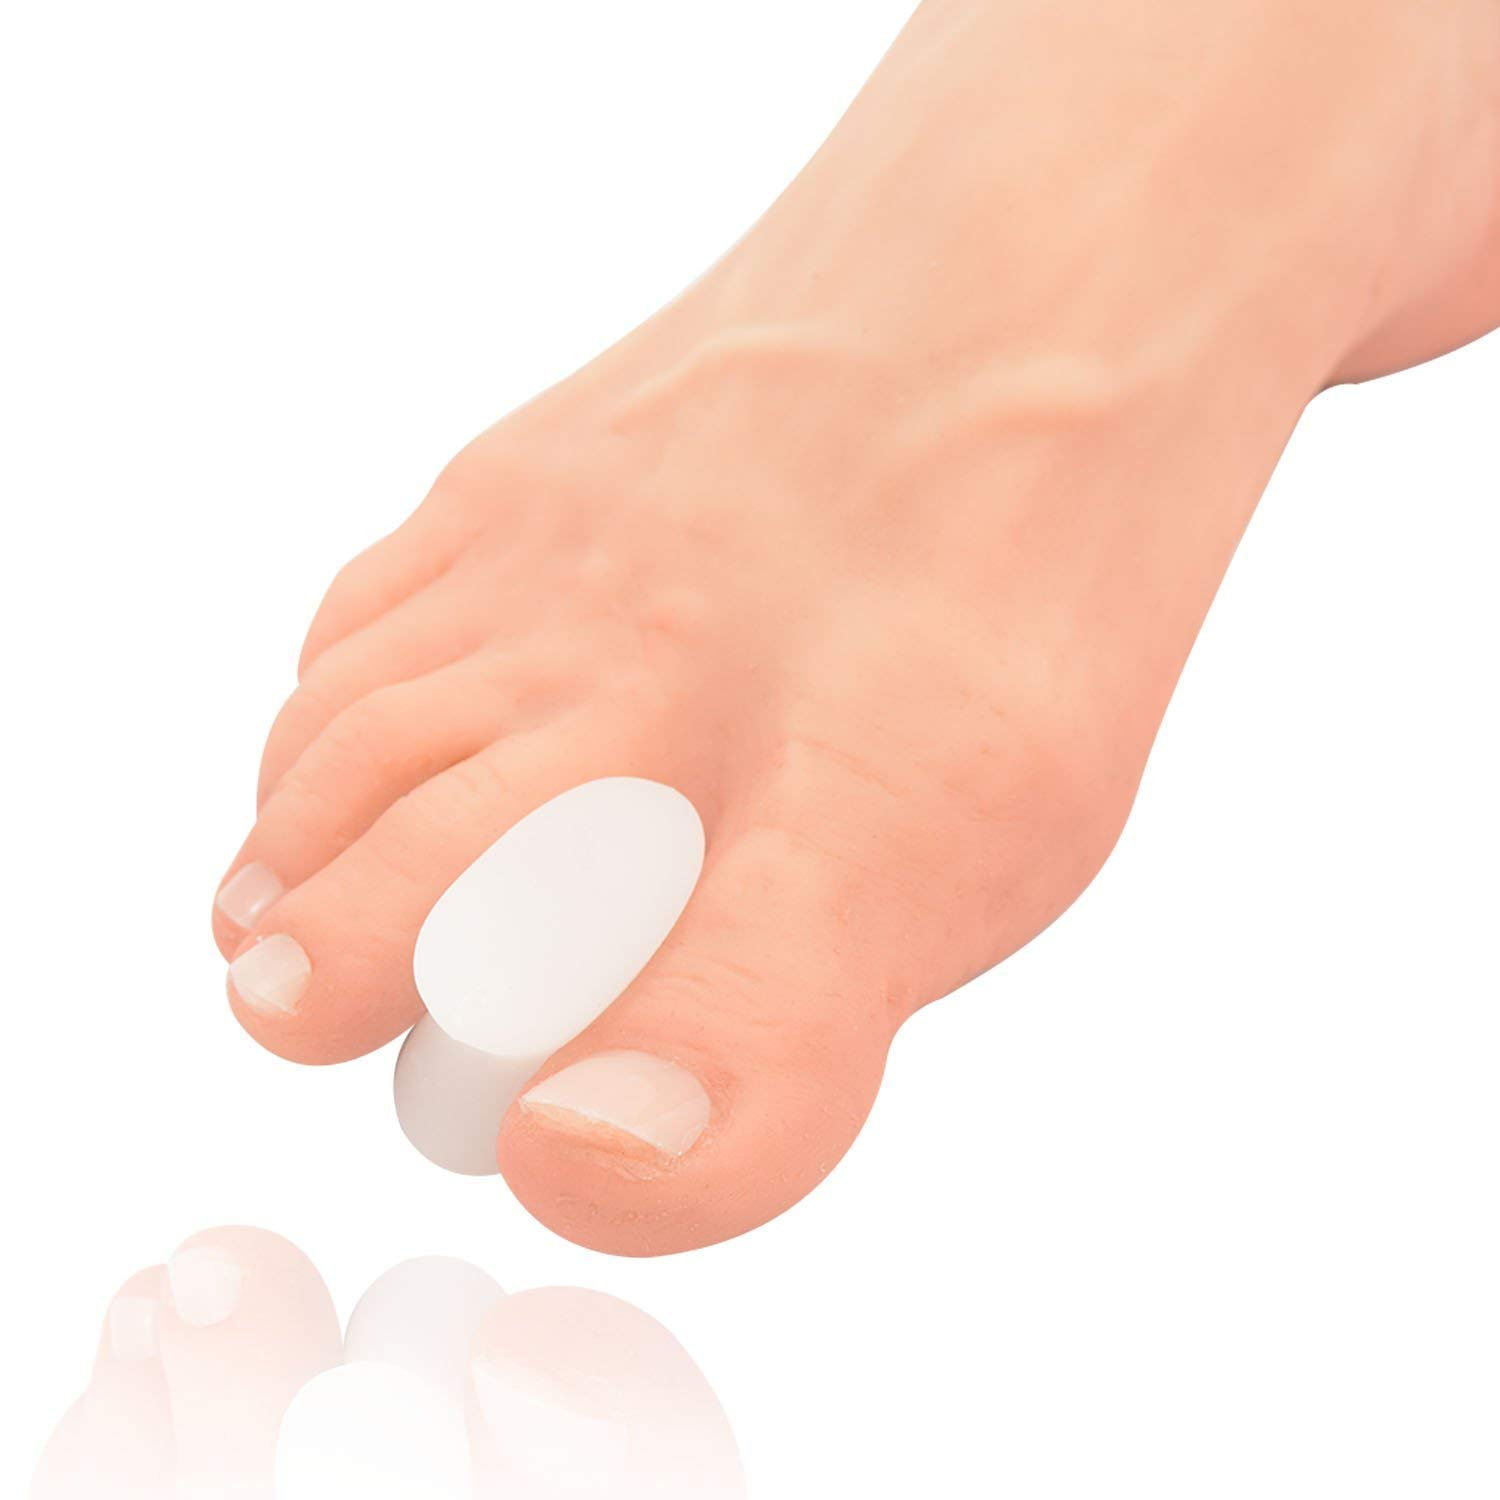 Dr. Frederick's Original Gel Toe Separators - 6 Pieces - Variety Pack - Bunion Treatment - Small, Medium and Large Sizes